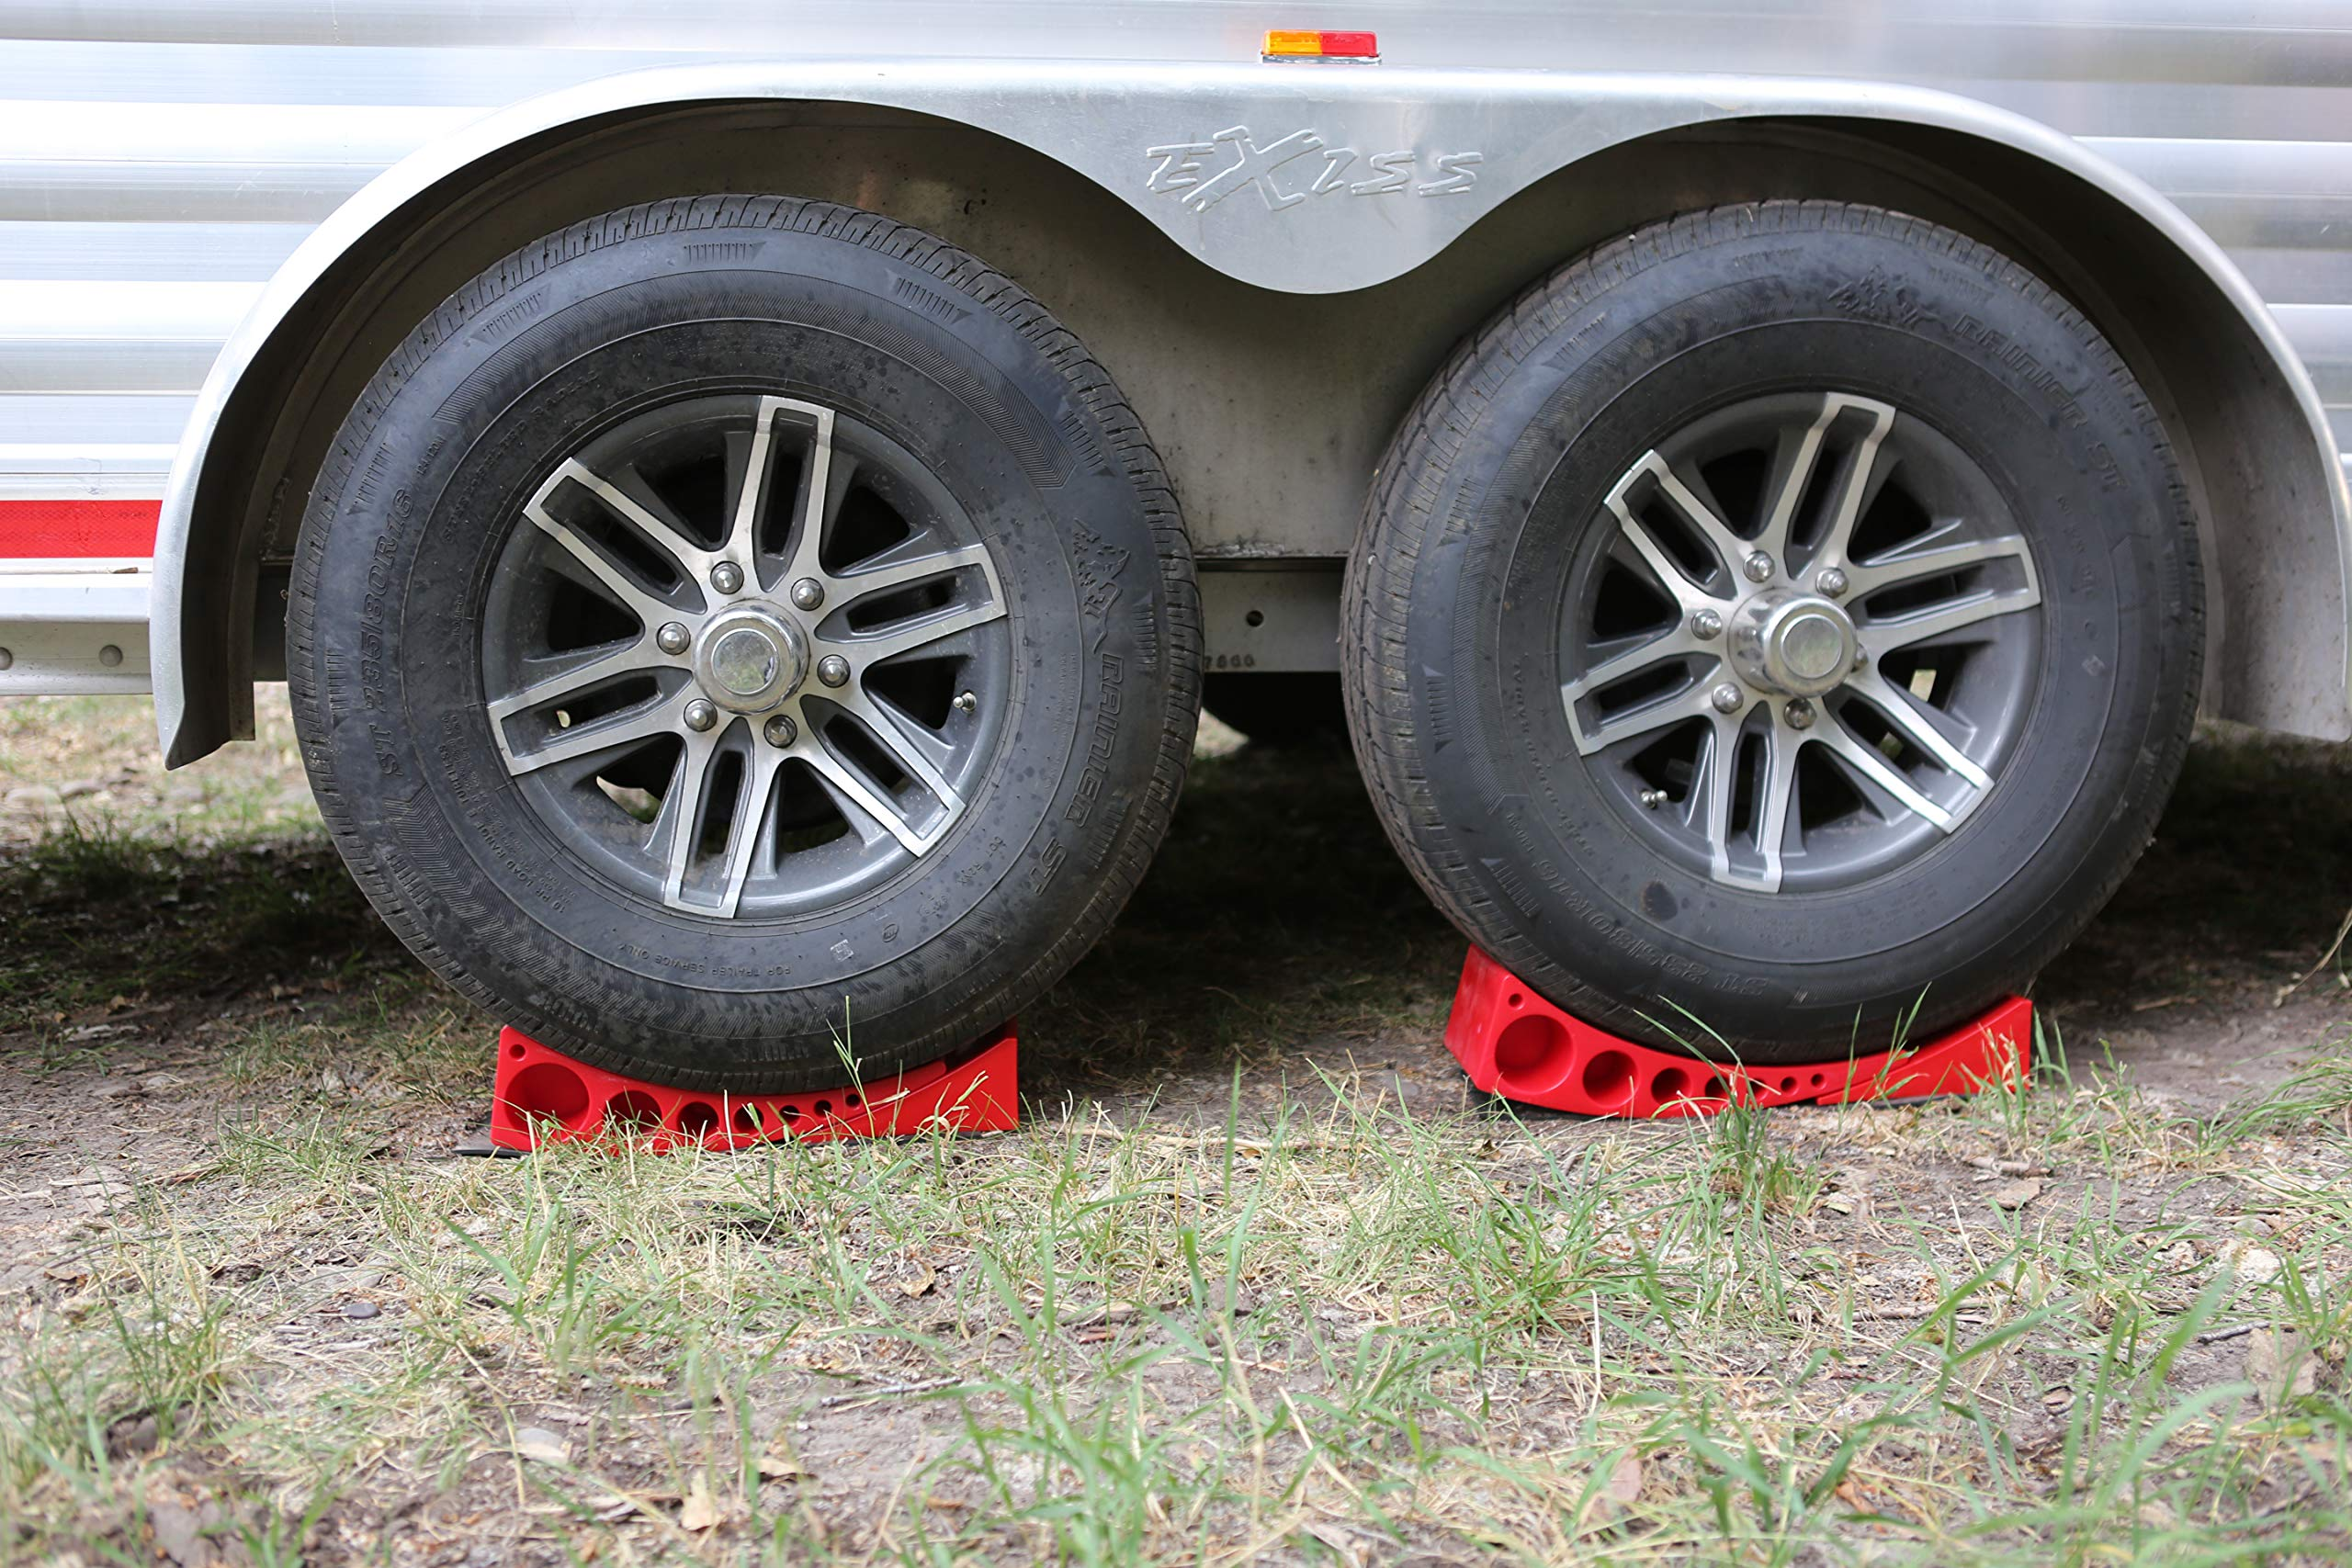 Andersen Hitches Camper Leveler 3604 + Rubber Mat | Easy Drive-On Camper Leveling | Less Than 5 Minutes to Level Your Camper, Trailer, RV, Motorhome | Faster, Easier Than RV Leveling Blocks by Andersen Hitches (Image #4)